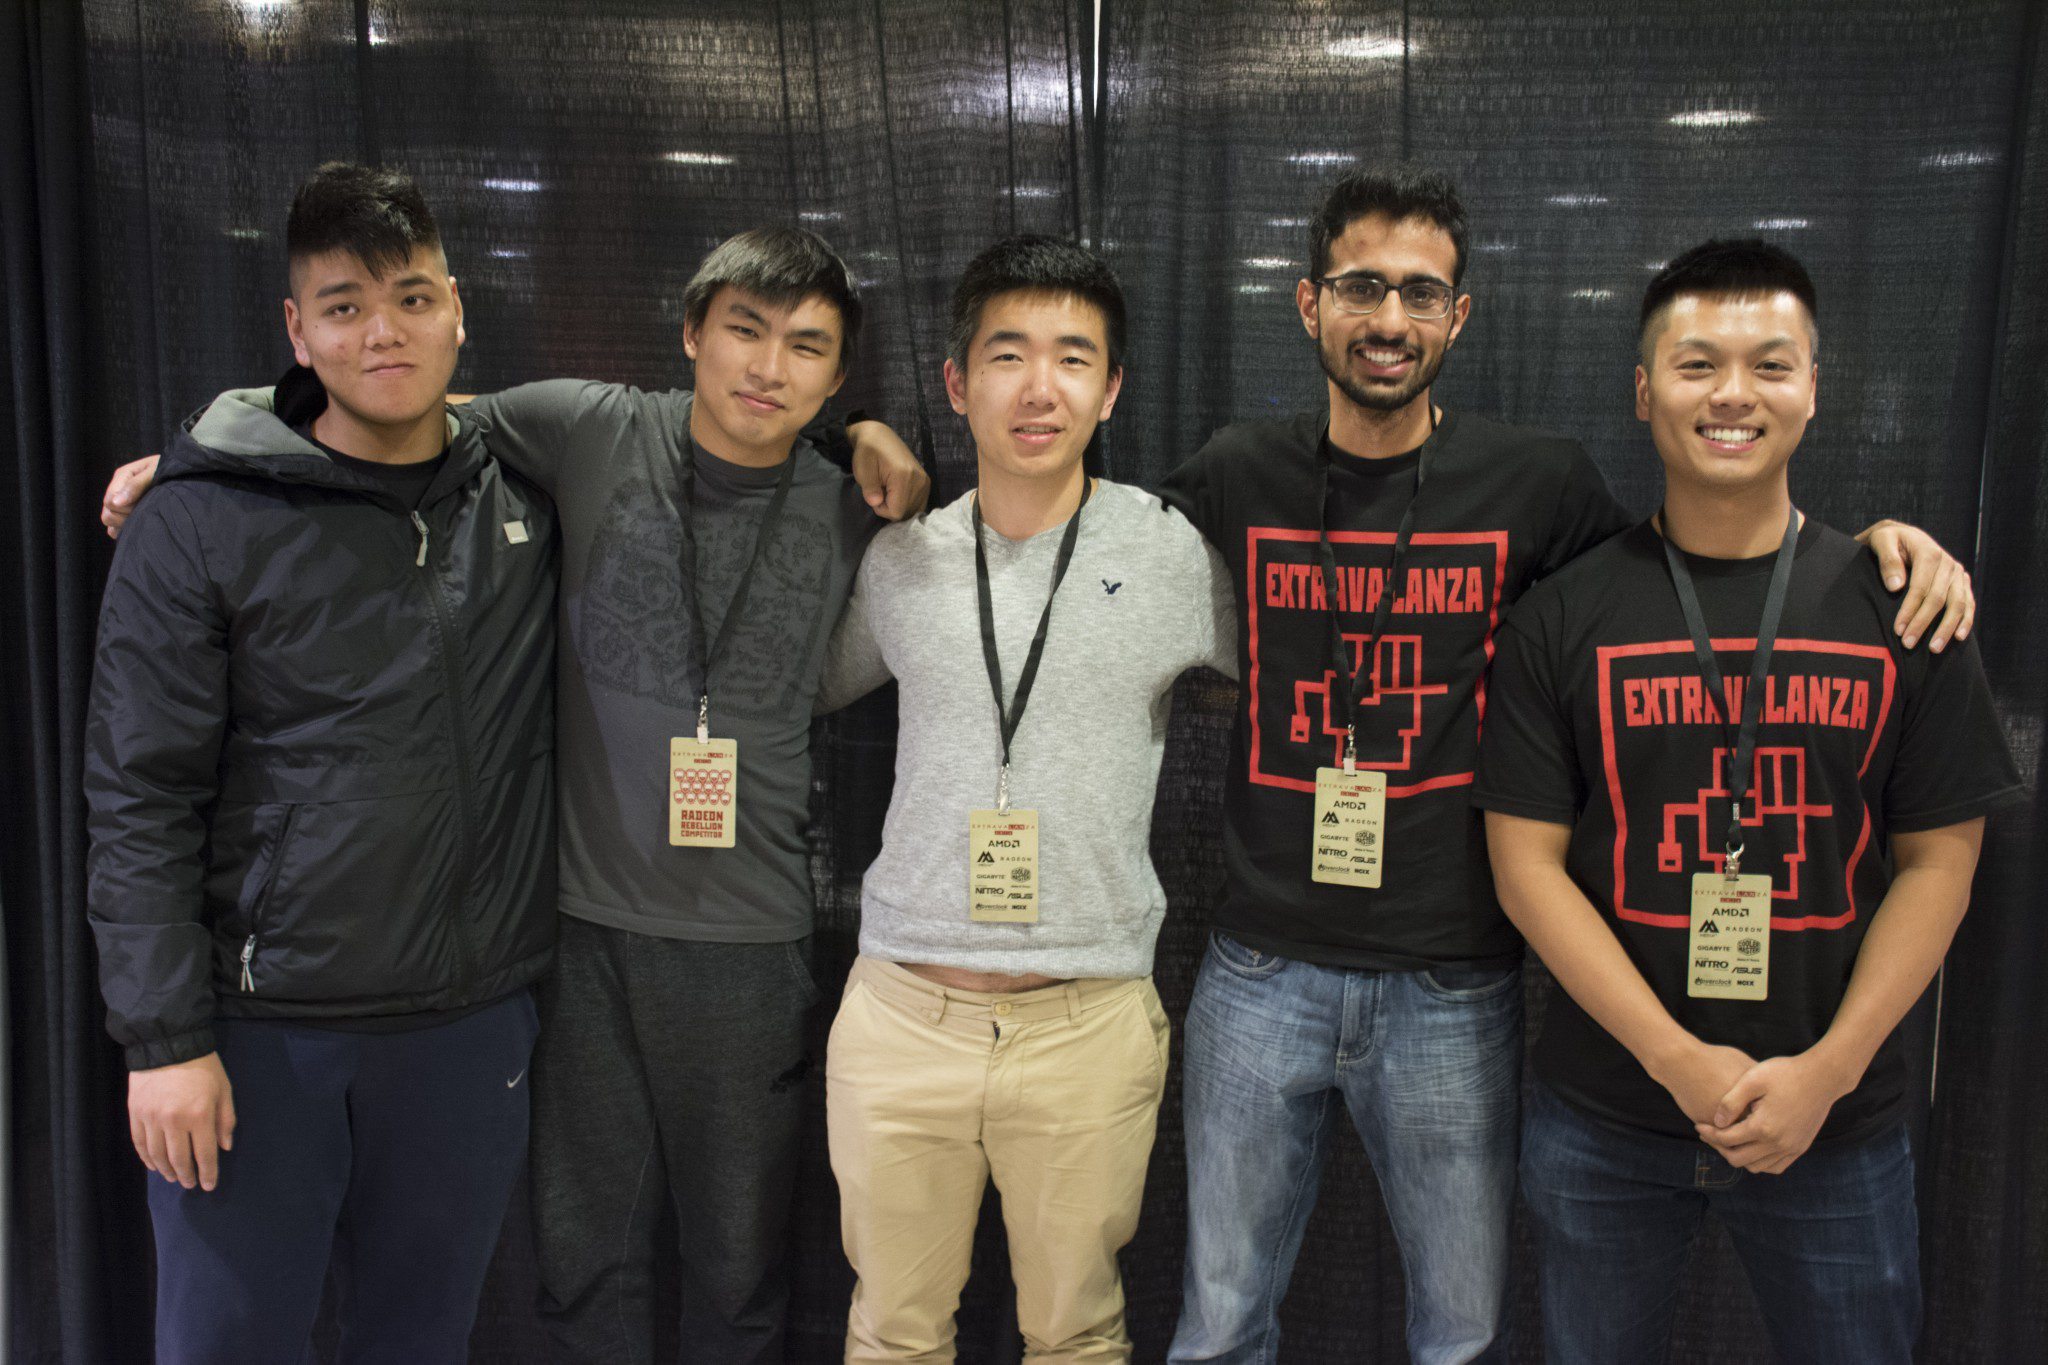 Michael Nguyen, Andy Tran, Kevin Shi, Haris Chaudhry, William Lam